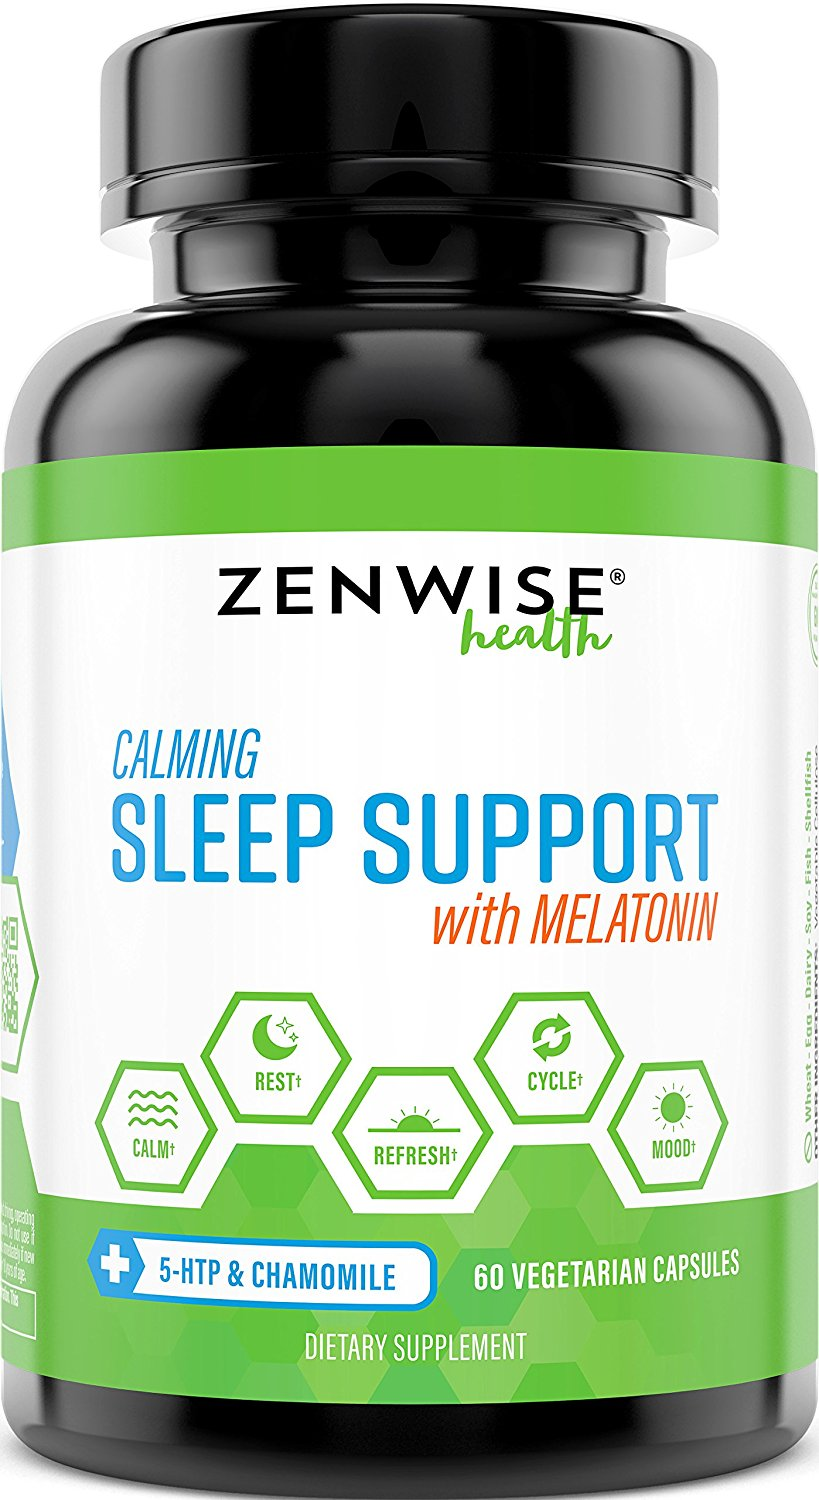 zenwise calming sleep support